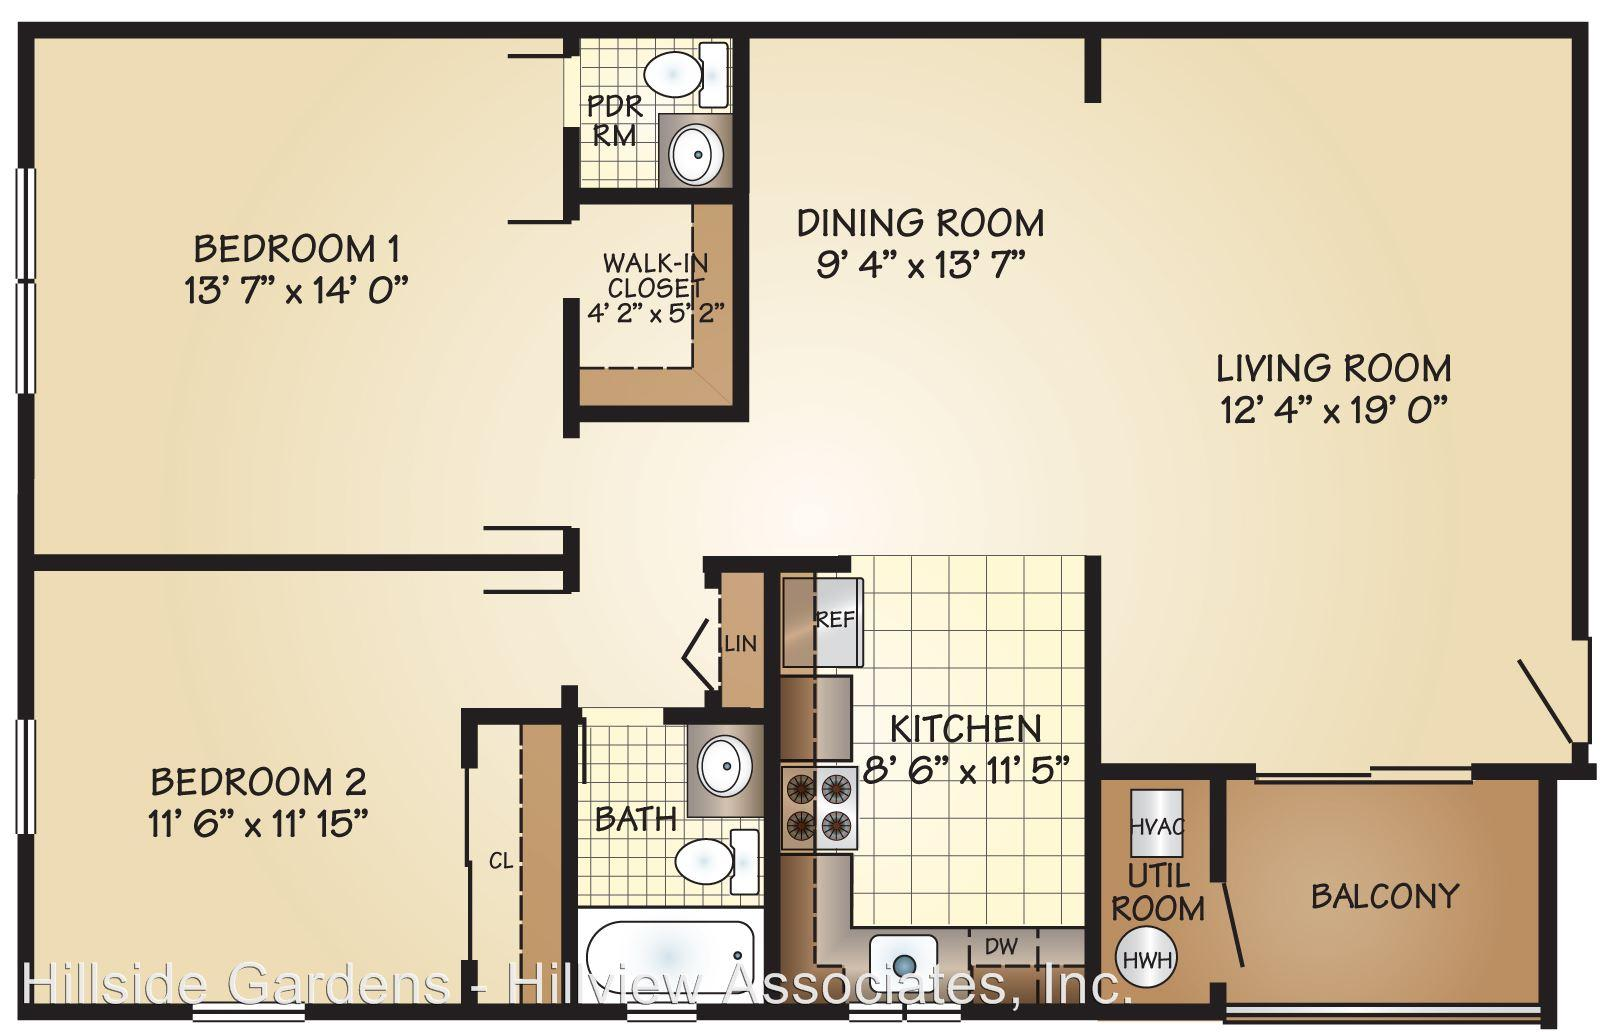 1200 Sunnyview Oval Apartments photo #1